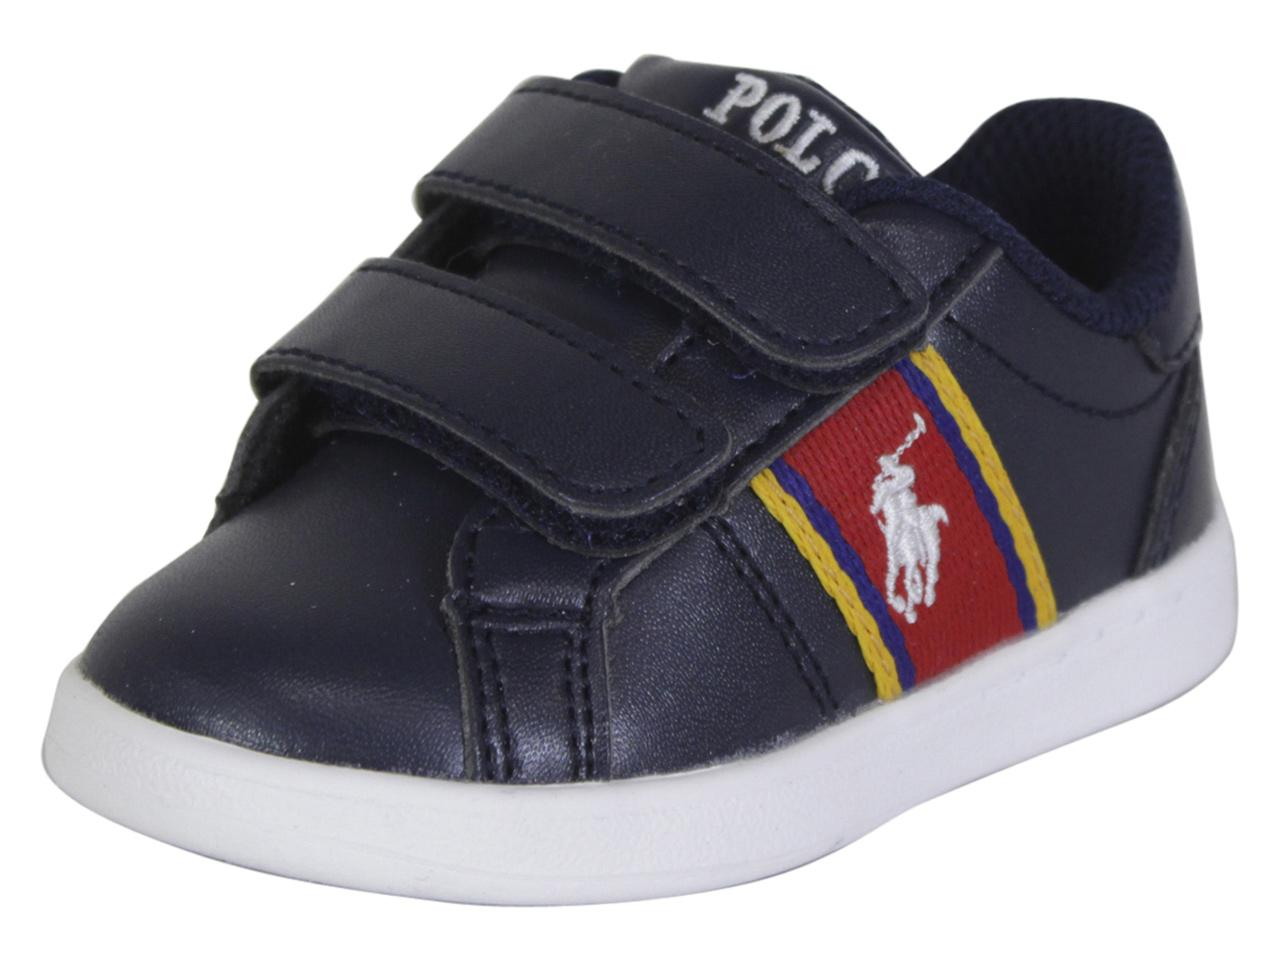 Polo Ralph Lauren Toddler/Little Boy's Quigley-EZ Sneakers ...